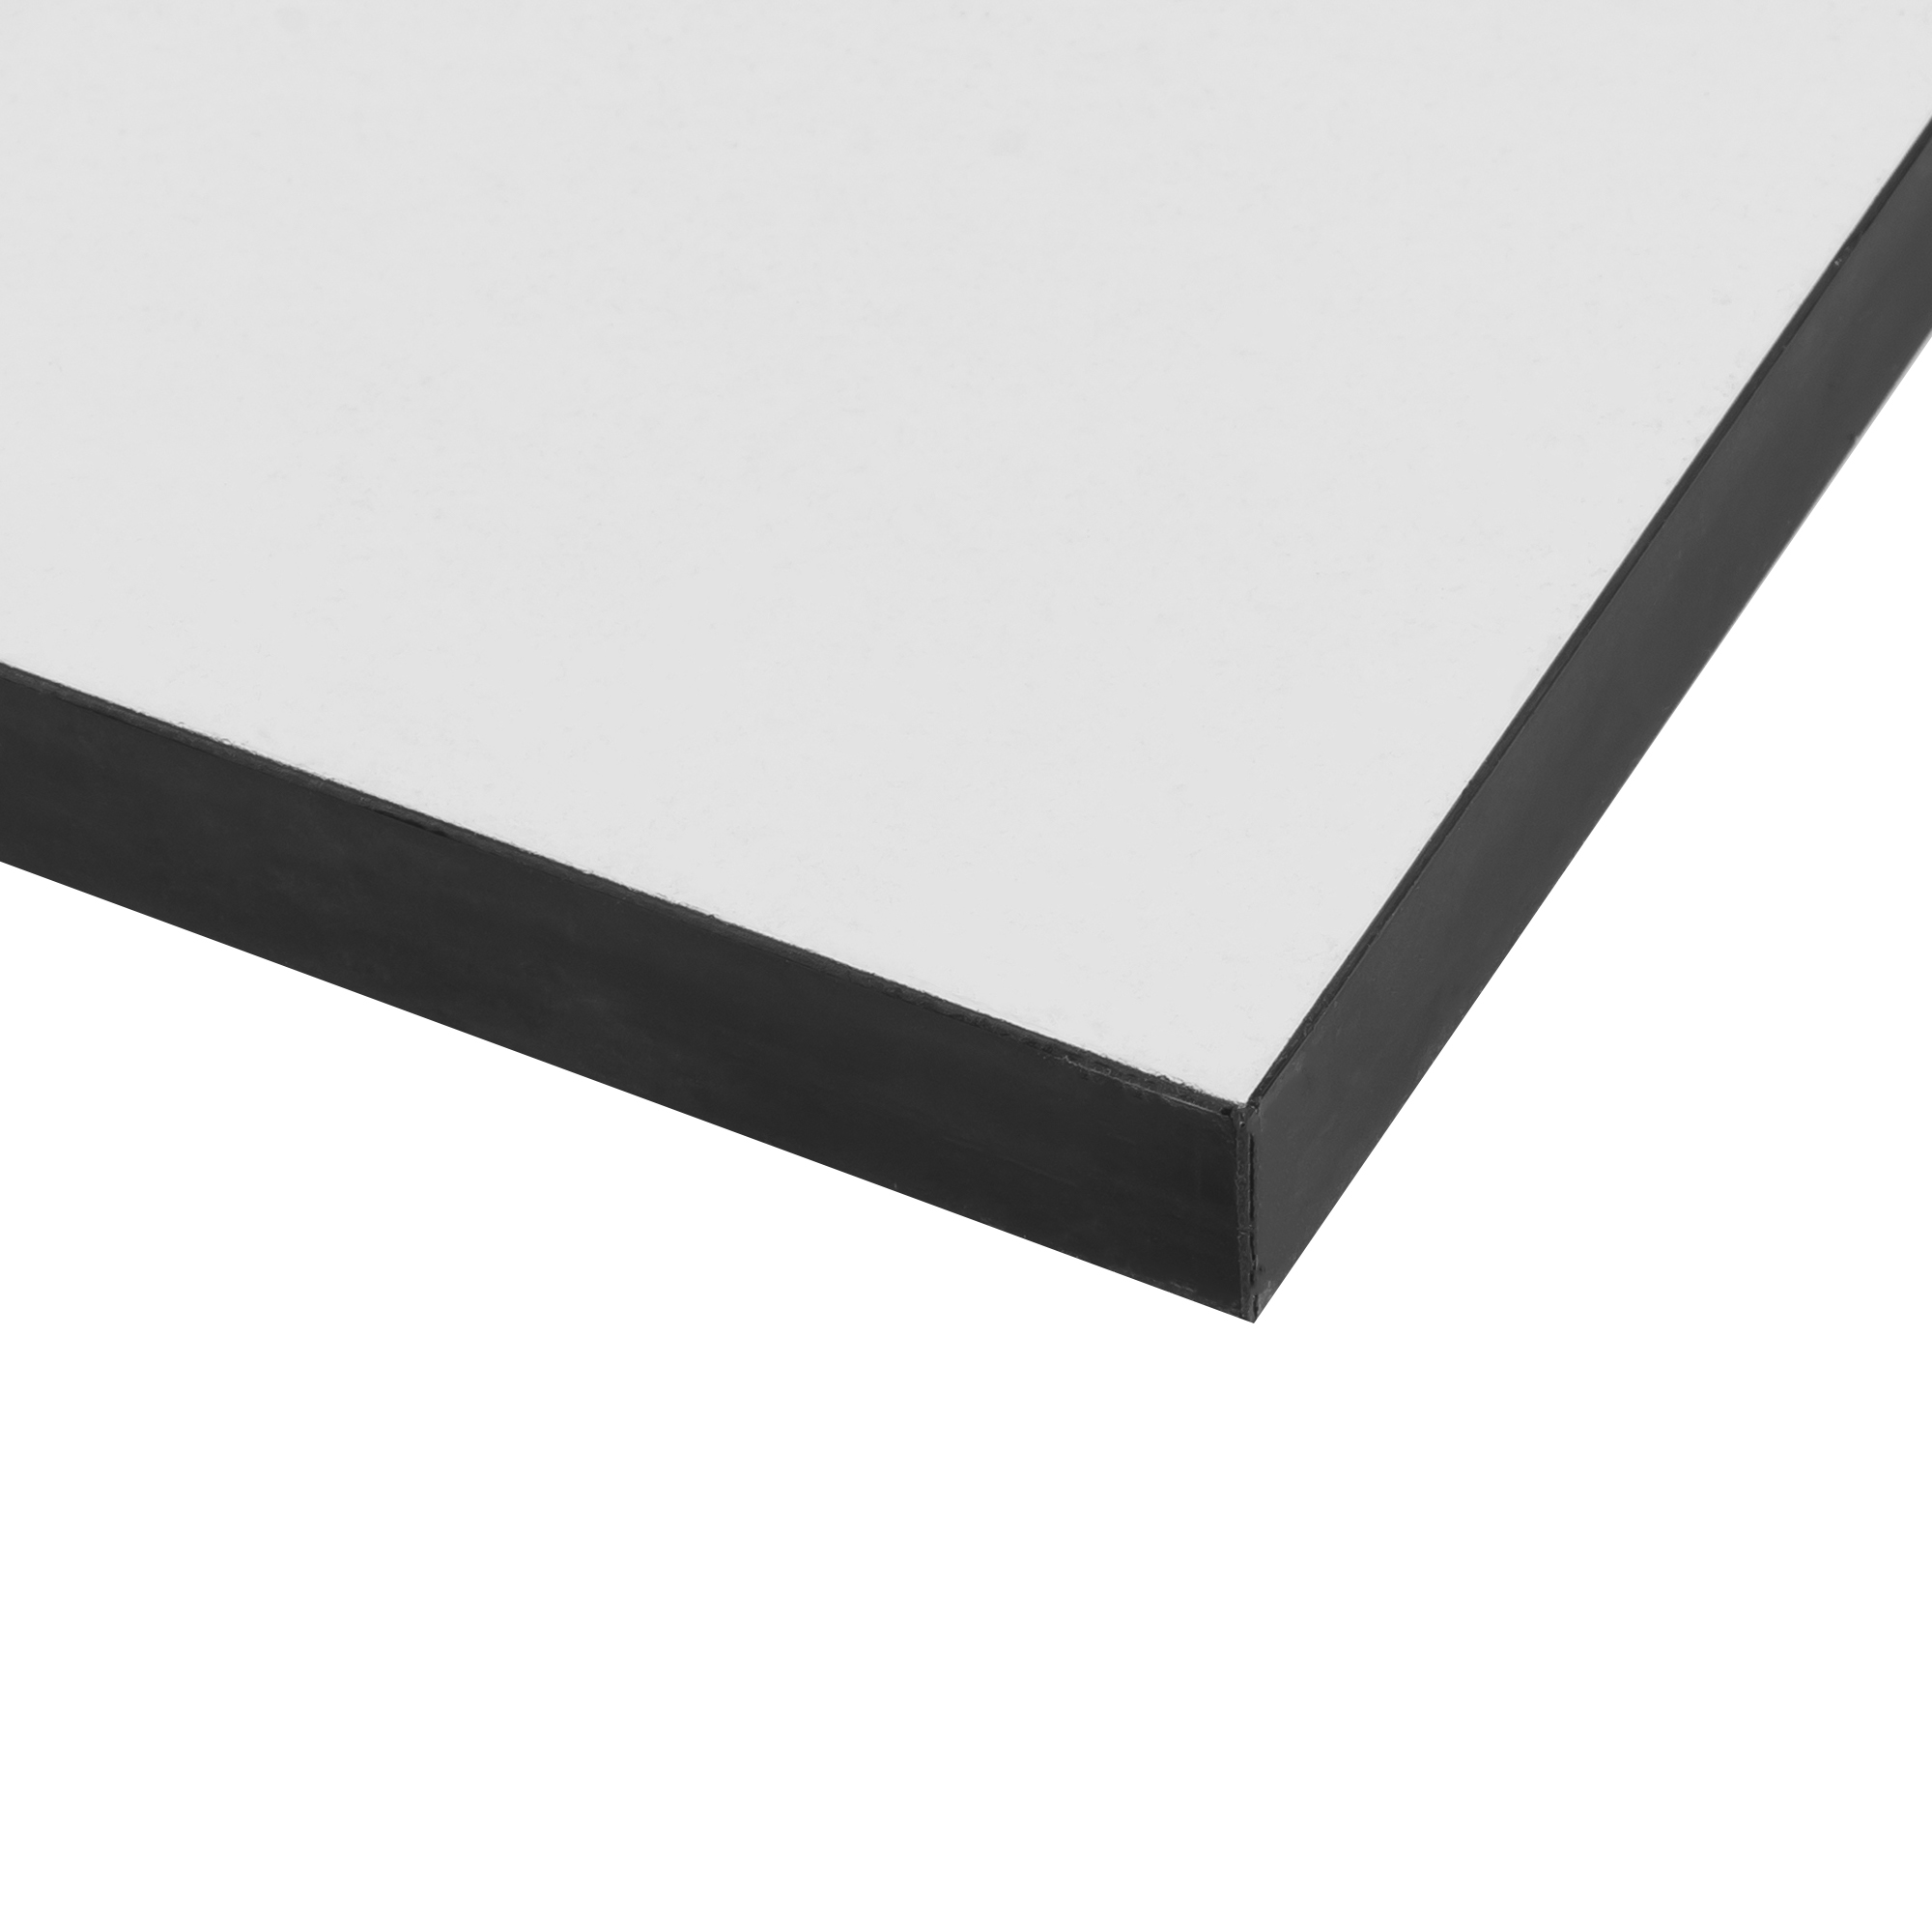 db drafting drawing board made for engineering, drafting and design. perfect for artist, designers.